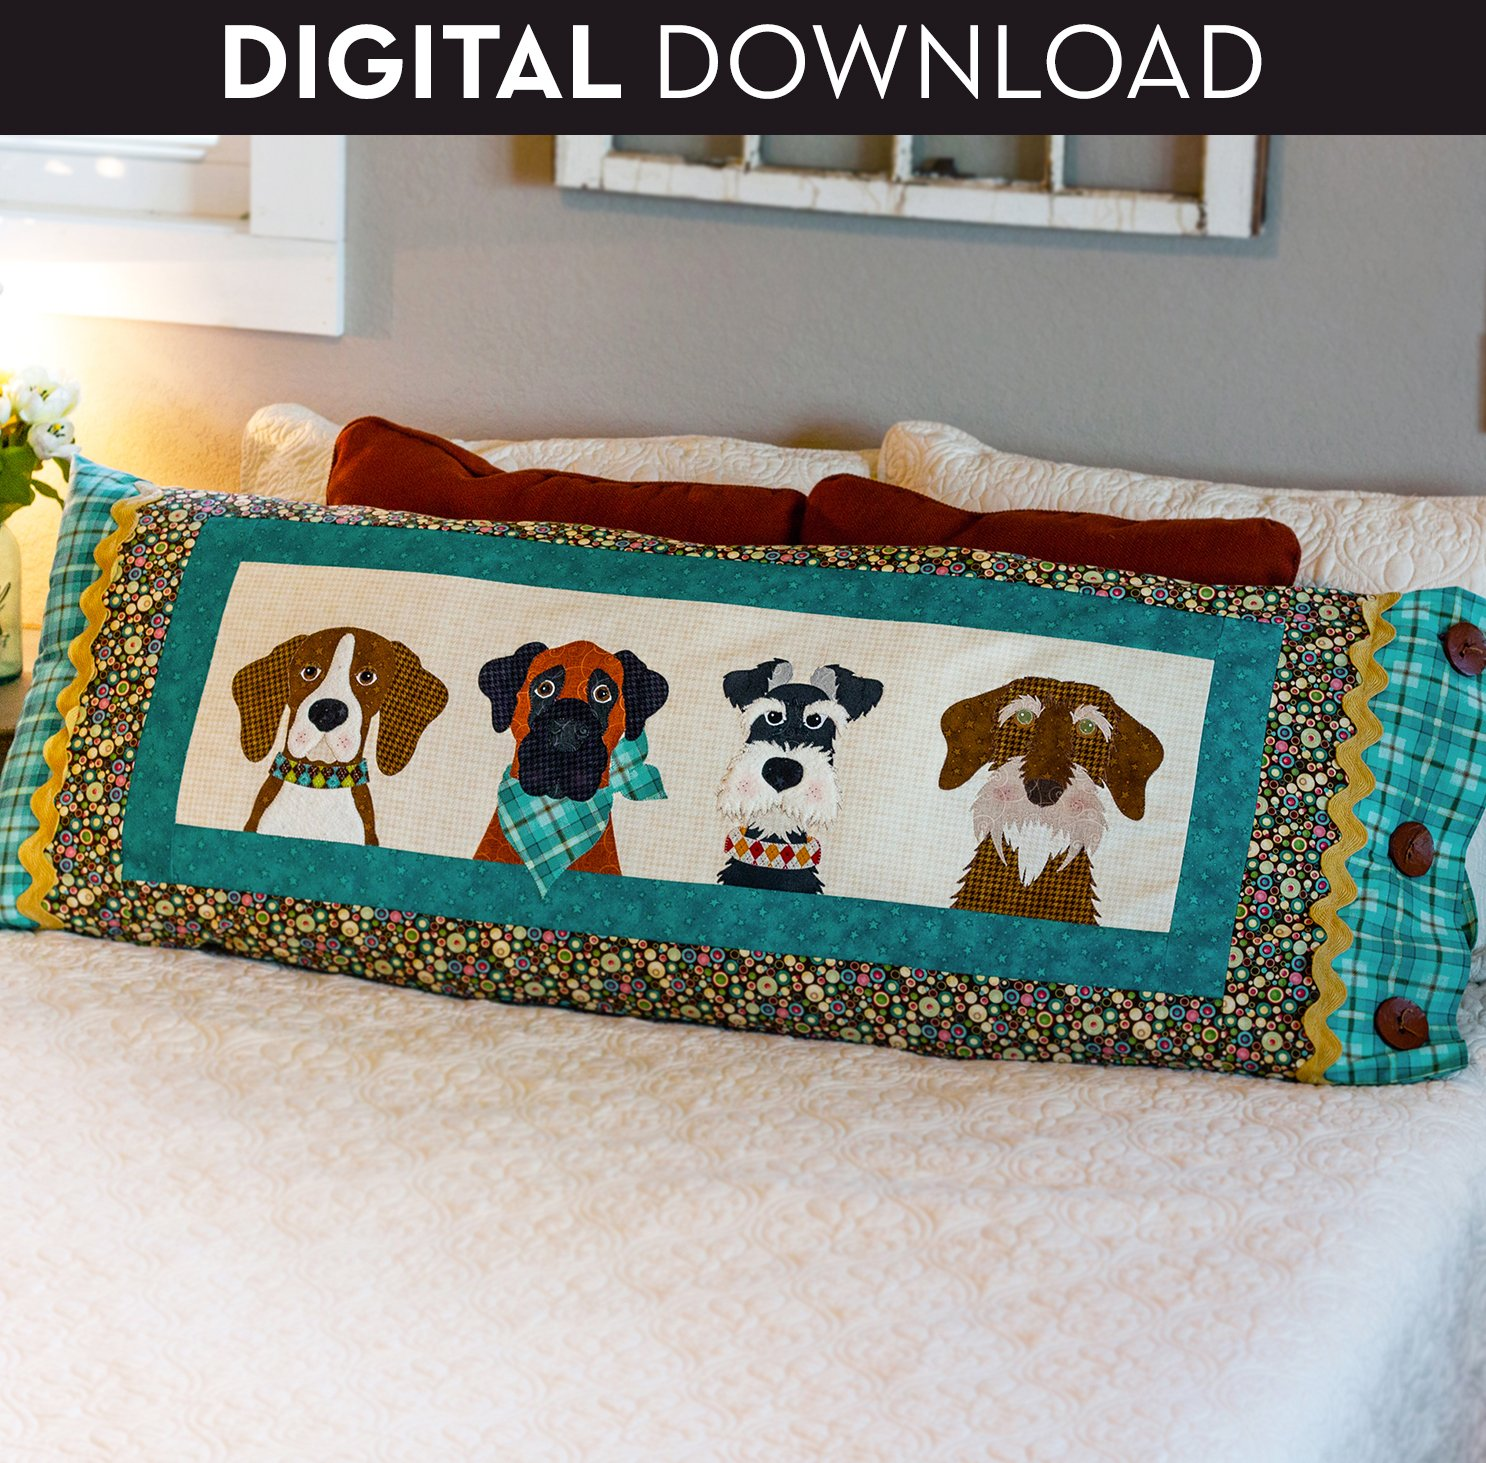 Furry Friends Applique Bench Pillow - Download (Appliques not included)